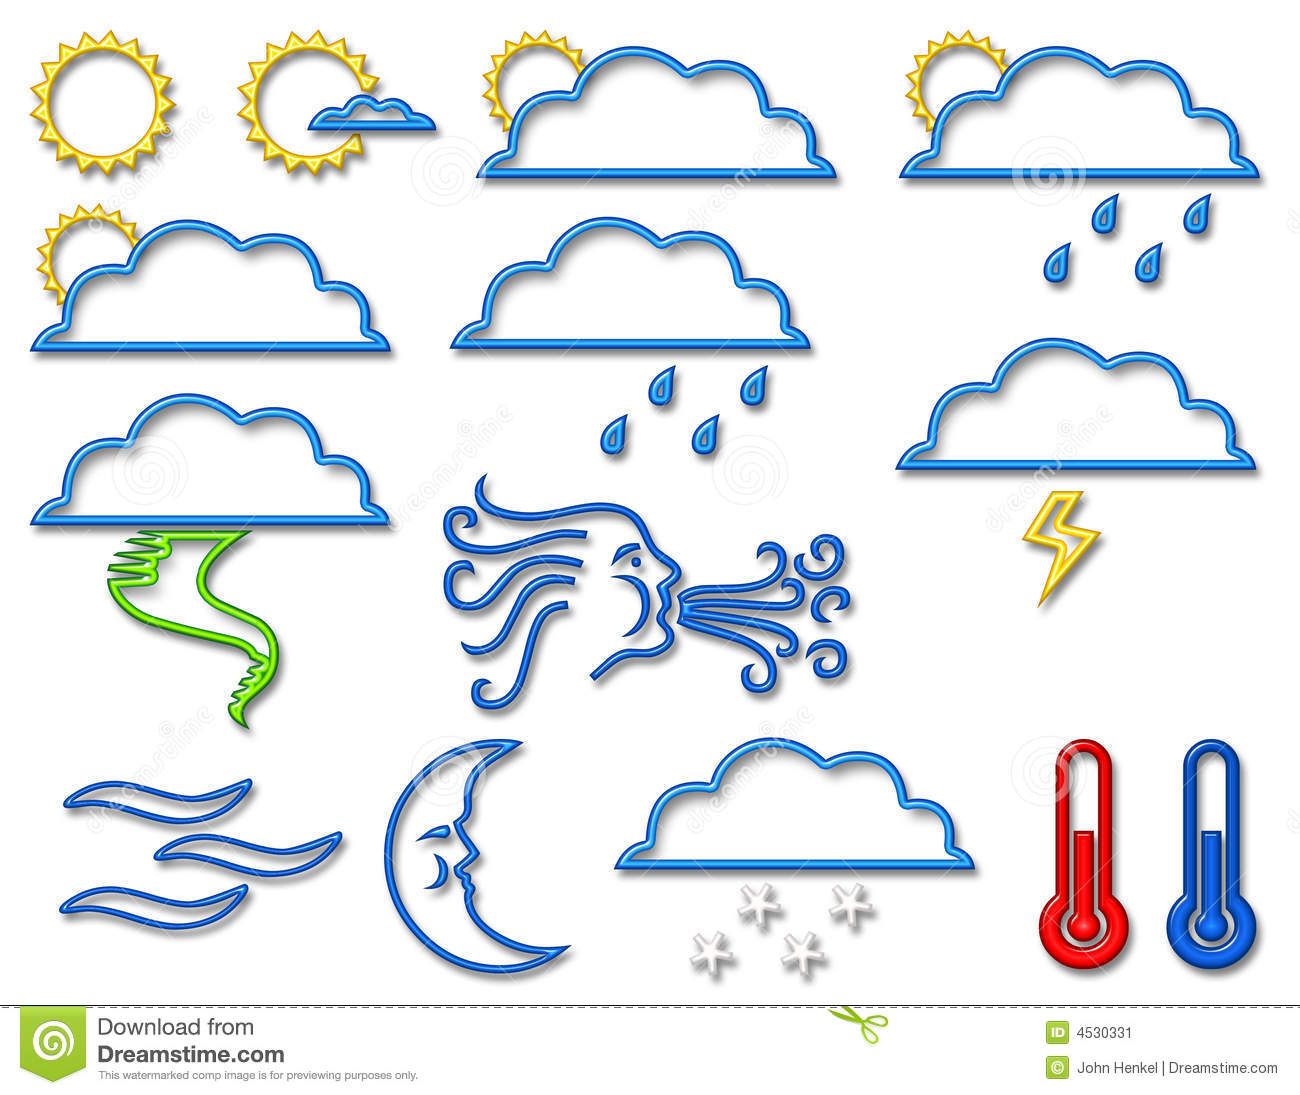 March Windy Weather Clipart - Clipart Suggest